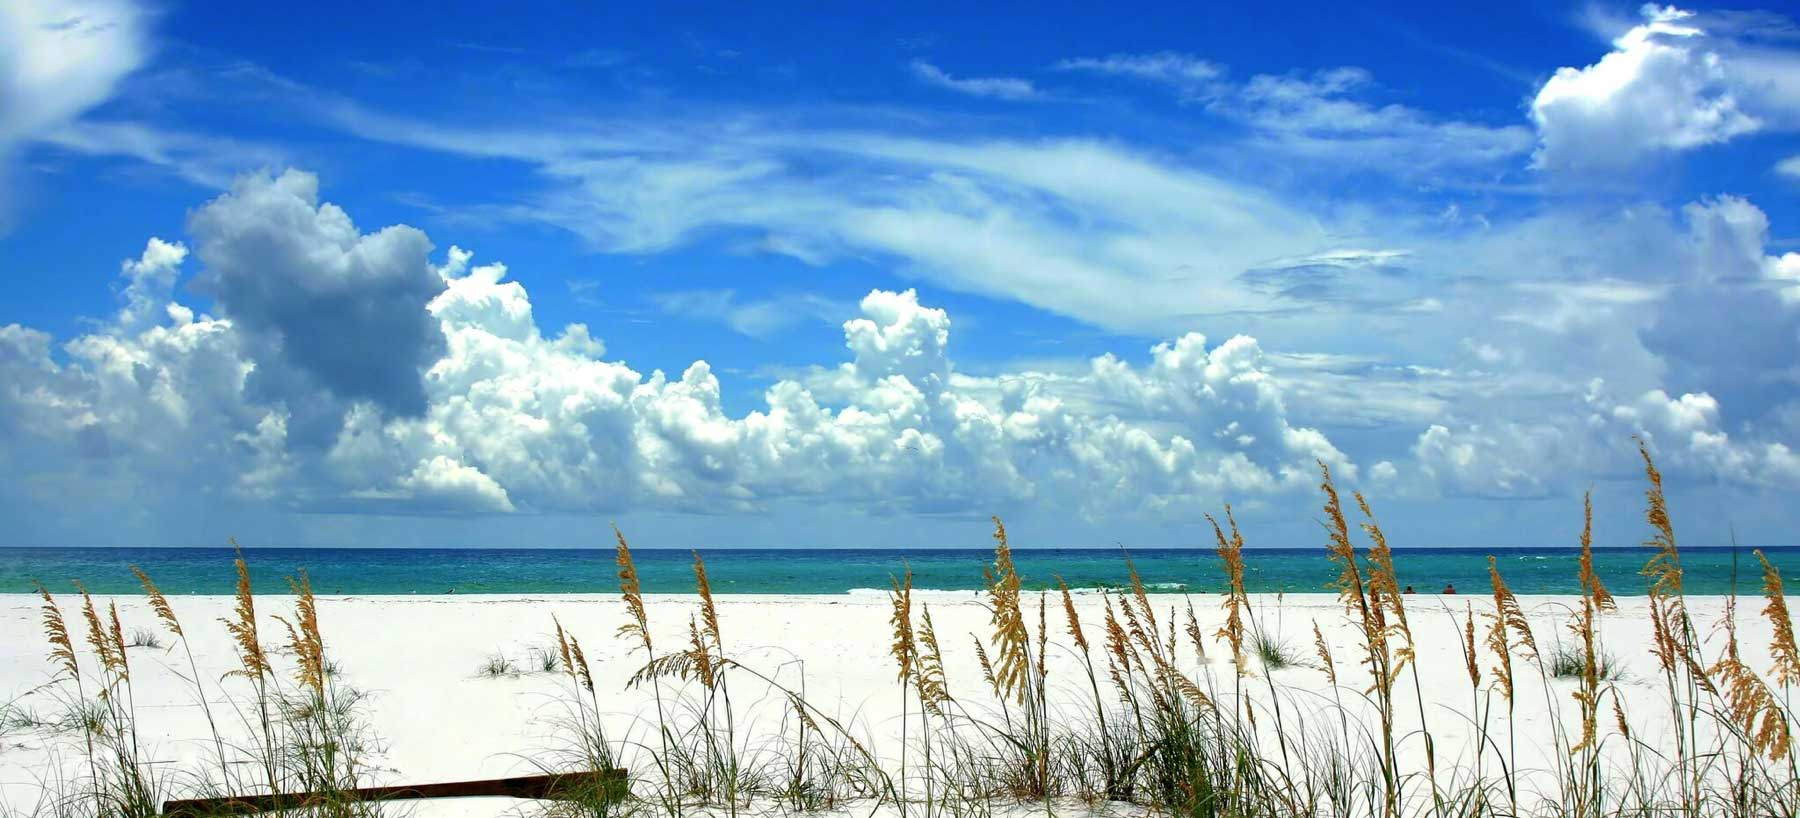 30a Condo Rentals Amp Luxury Vacation Rentals Your Friend